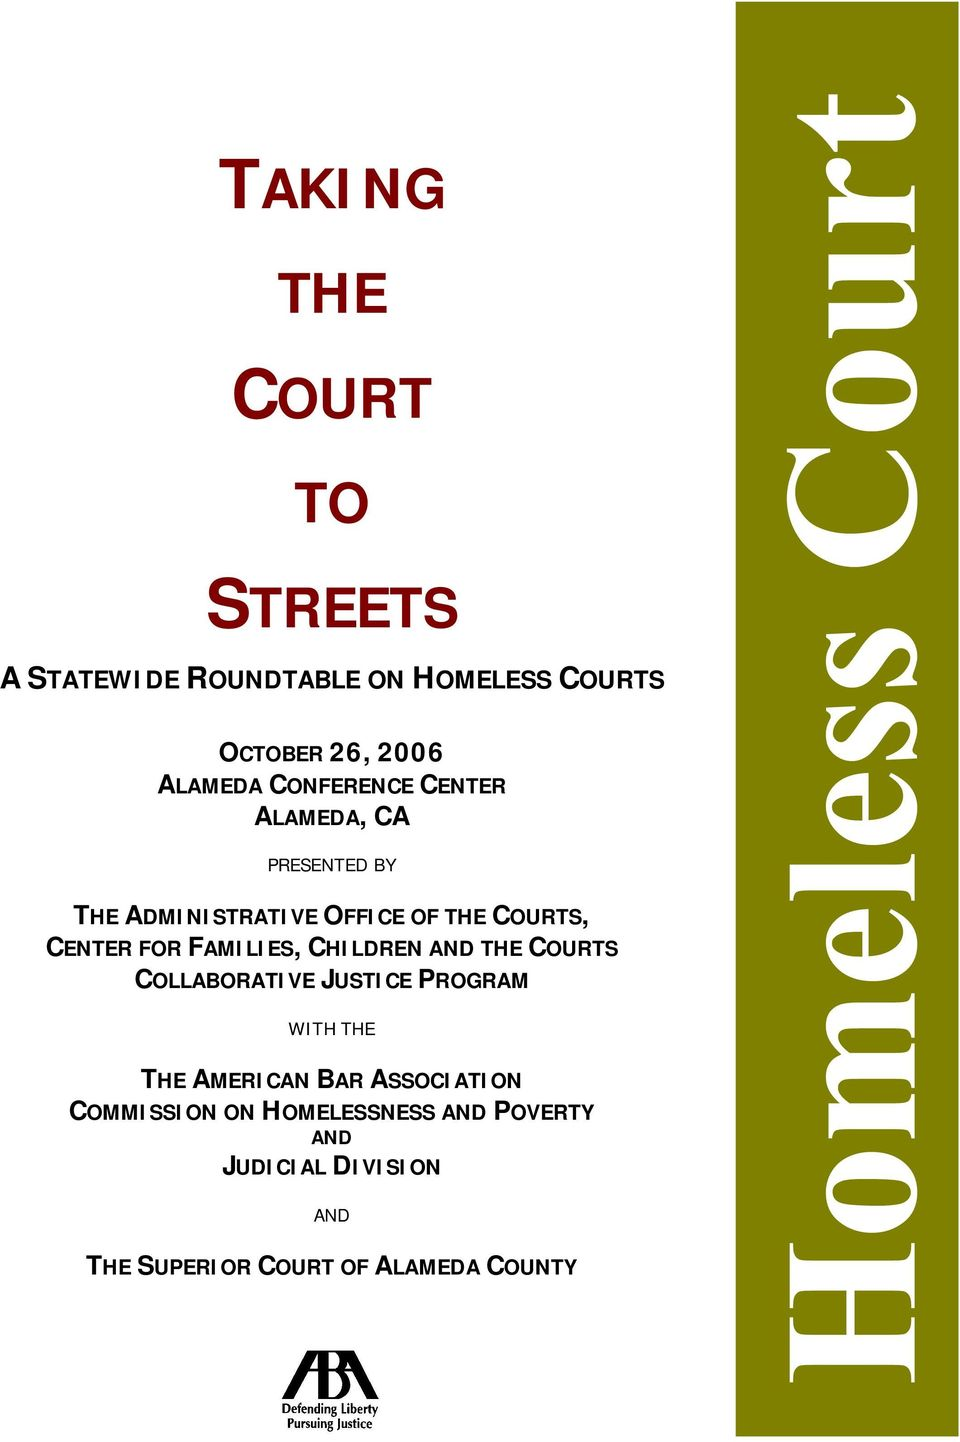 FAMILIES, CHILDREN AND THE COURTS COLLABORATIVE JUSTICE PROGRAM WITH THE THE AMERICAN BAR